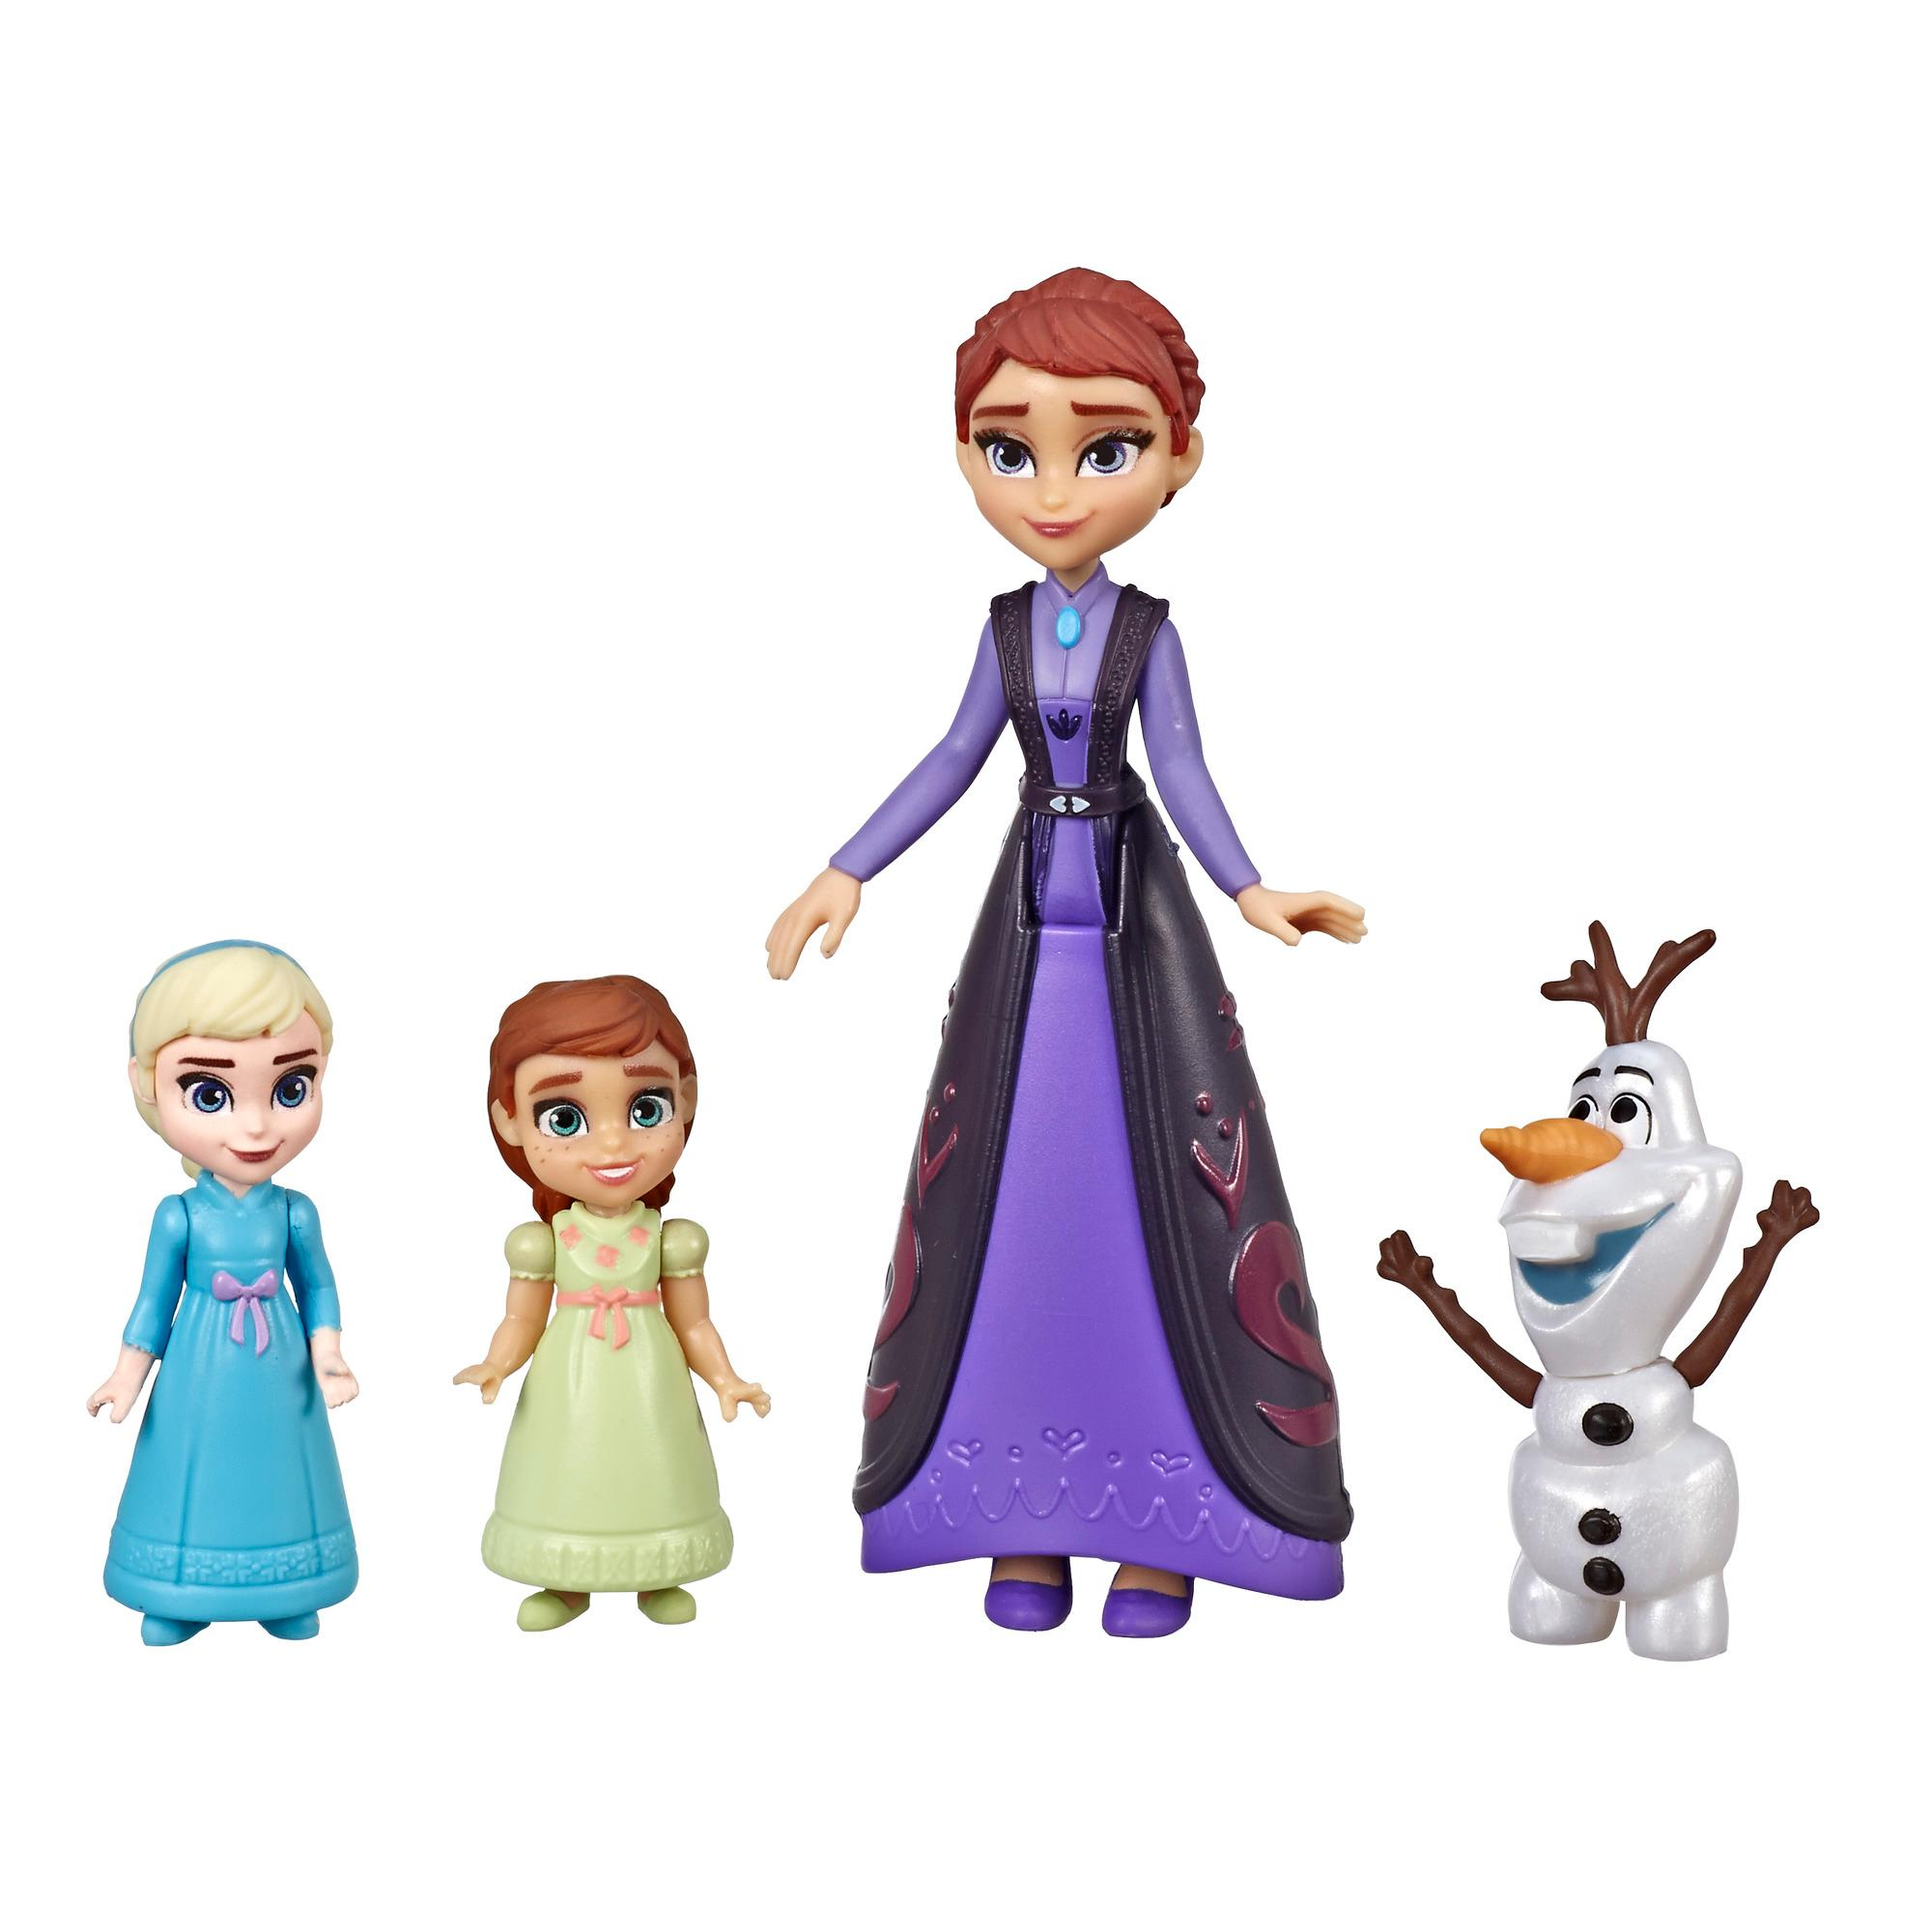 Disney Frozen Family Set Elsa and Anna Dolls with Queen Iduna Doll and Olaf Toy, Inspired by the Disney Frozen 2 Movie